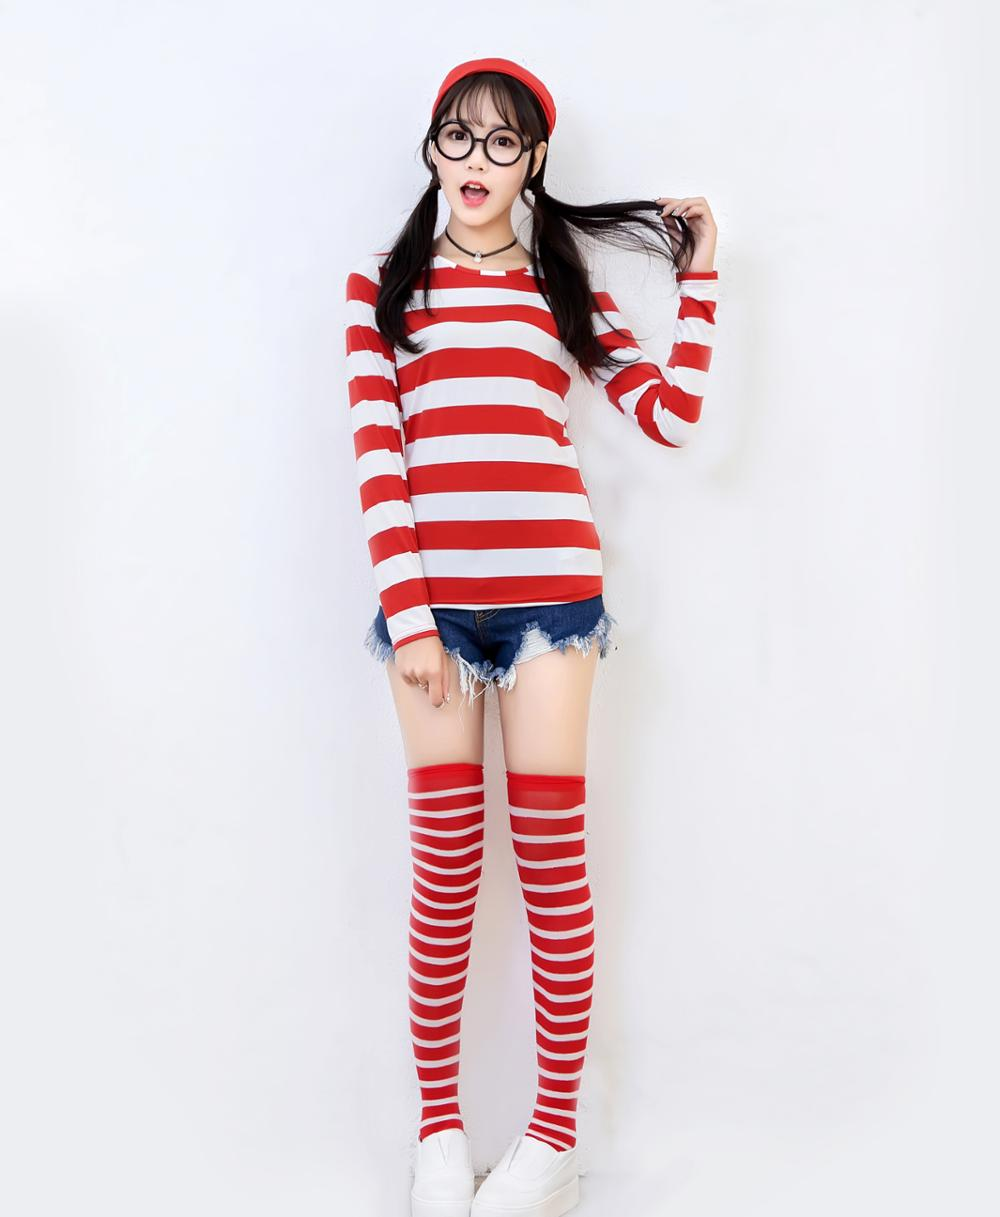 Man Women Kid Halloween Cartoon Wally Costume Family Party Storybook Wally Cosplay Uniform Shirt+Hat+Glasses